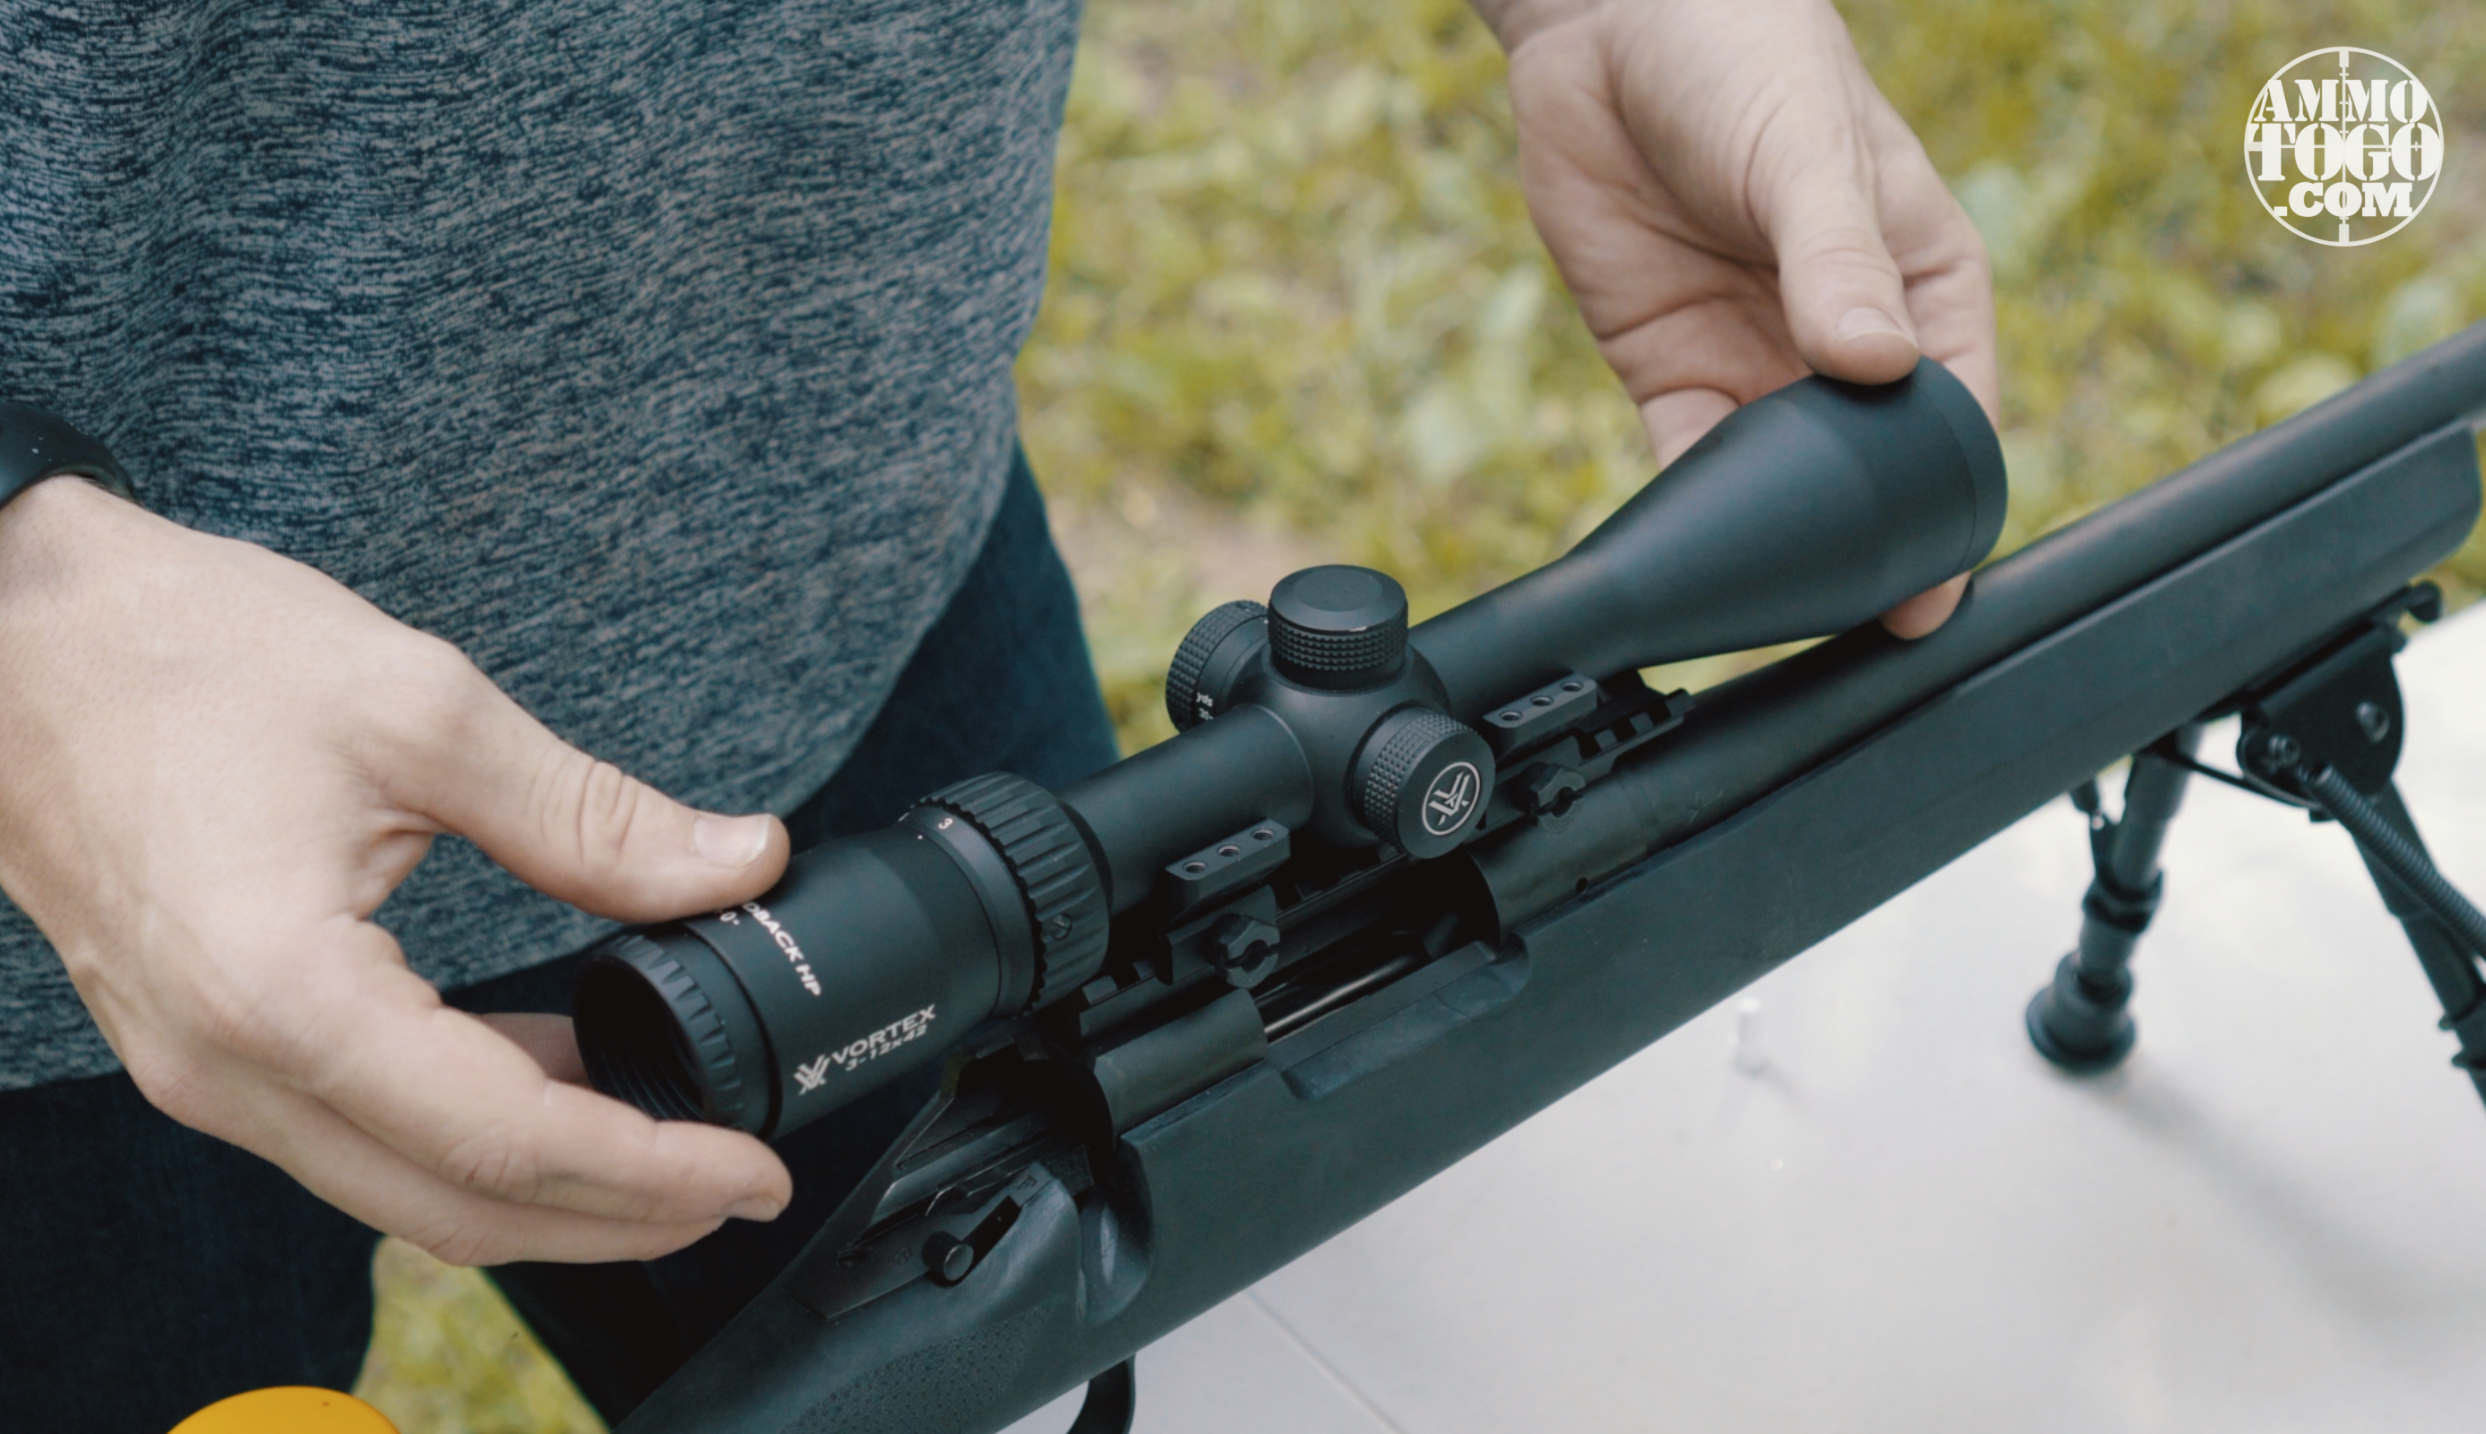 Mounting Rifle Scope to Scope Rings